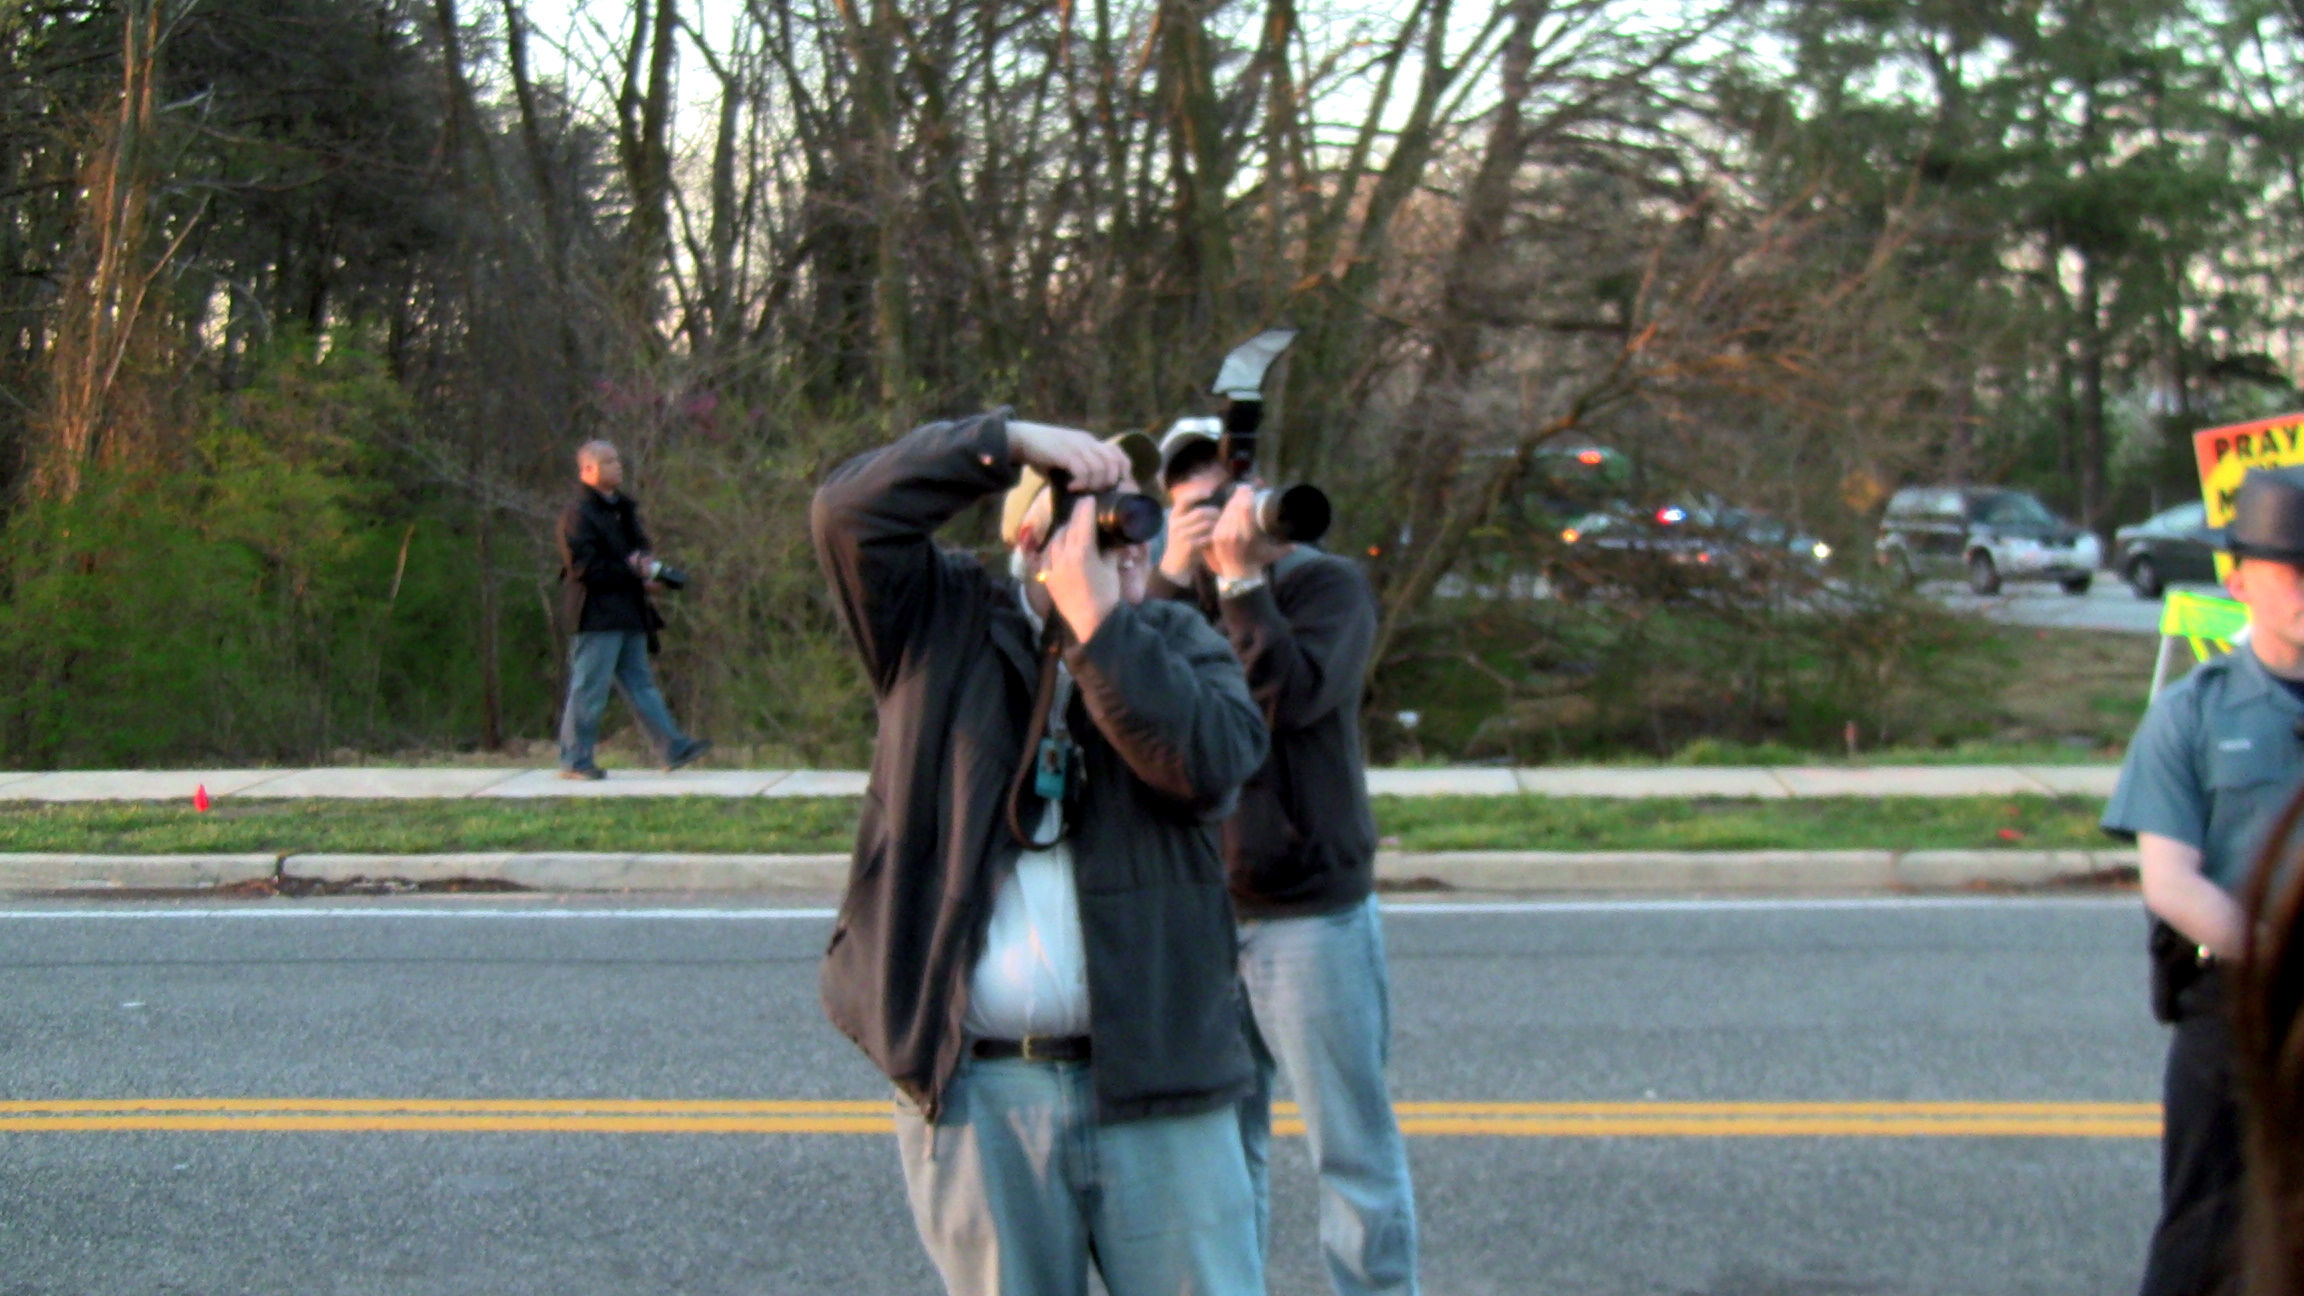 Journalists Photographing the Counter Protest